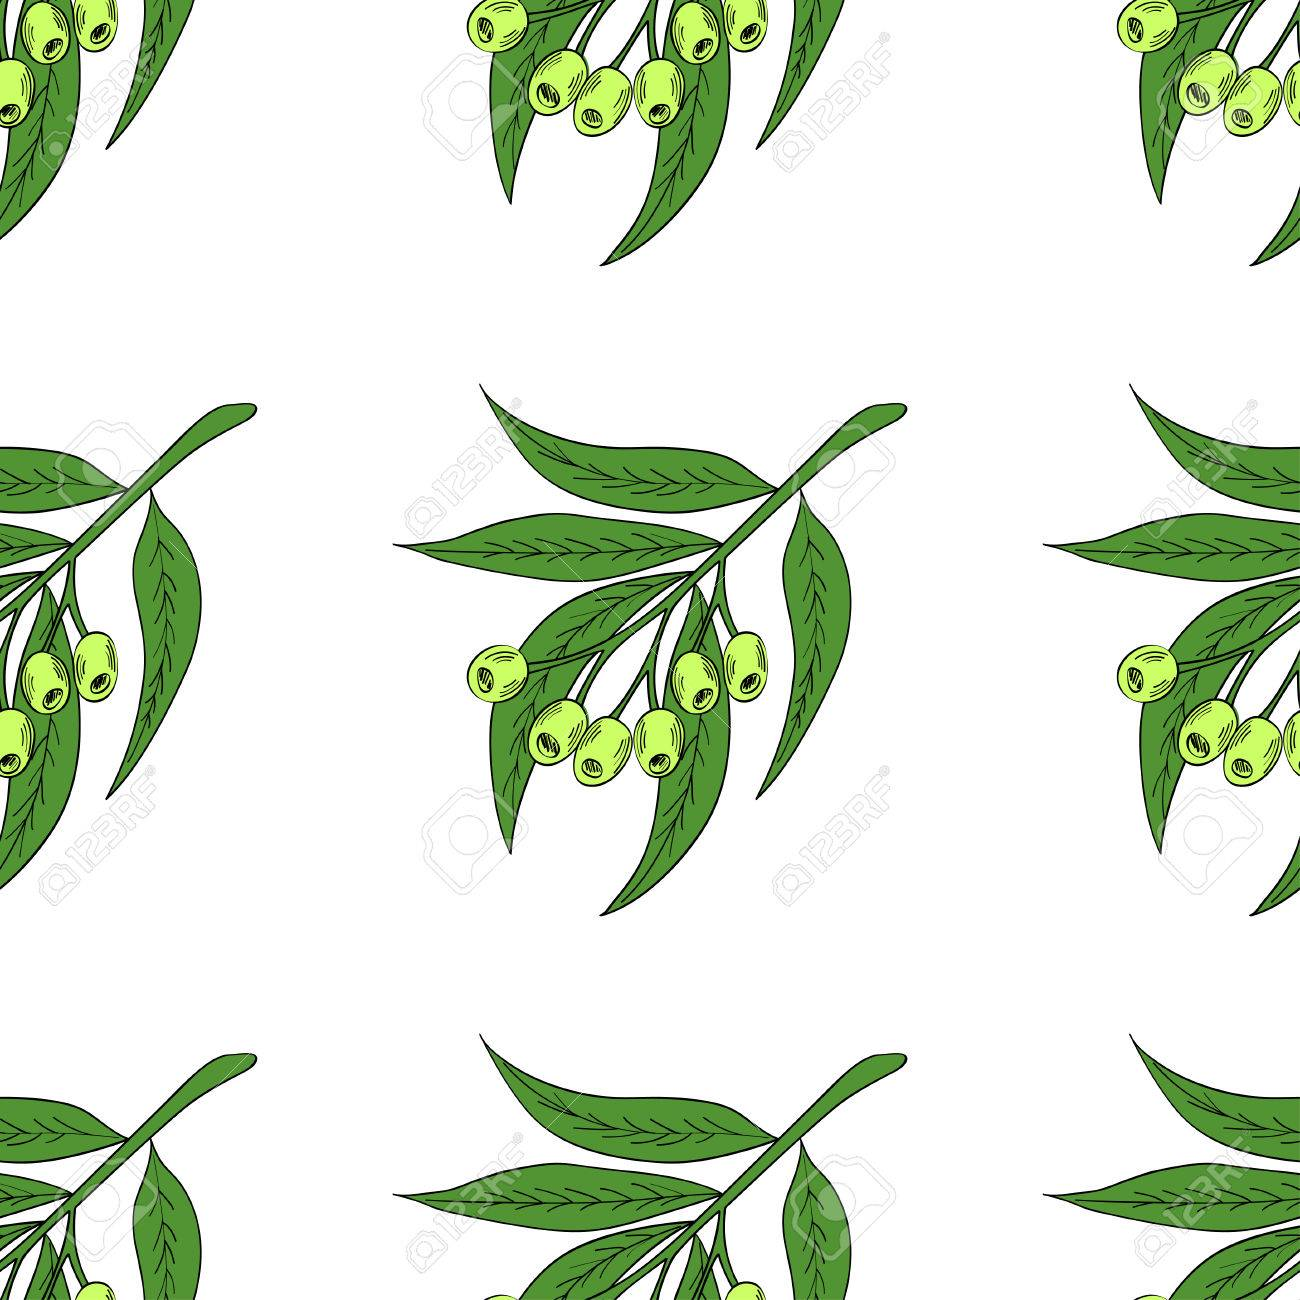 Hand Drawn Eucalyptus Leaves And Fruits Eucalyptus Plant Branch Royalty Free Cliparts Vectors And Stock Illustration Image 78018562